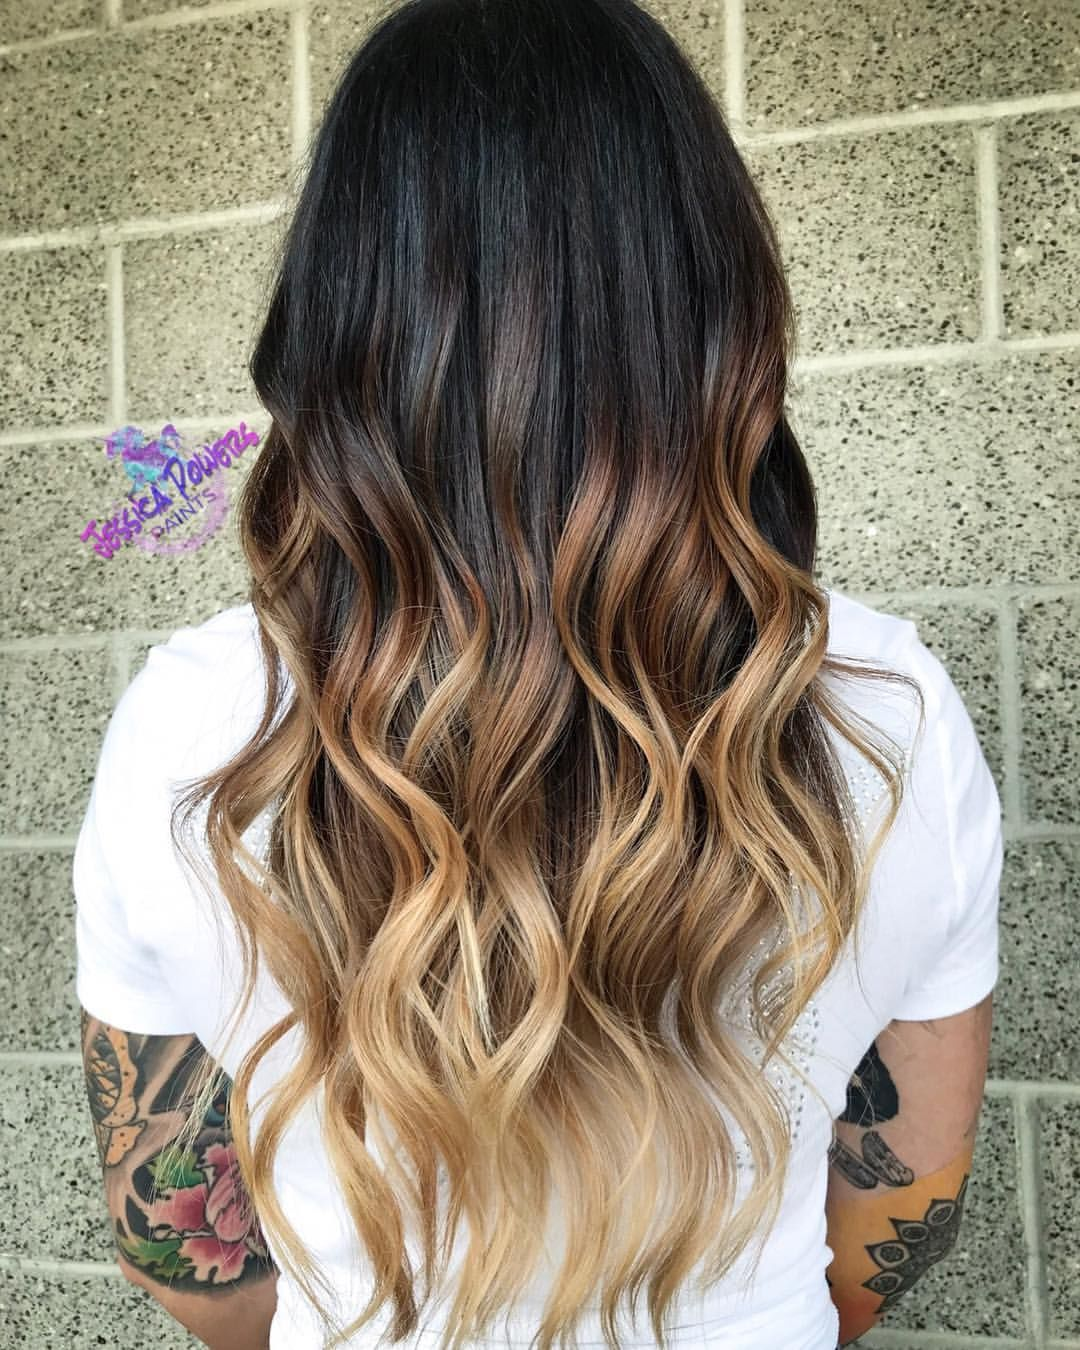 High Contrast Balayage Ombre Blonde Ombre On Naturally Dark Long Hair Ombre Hair Blonde Dark Ombre Hair Long Ombre Hair